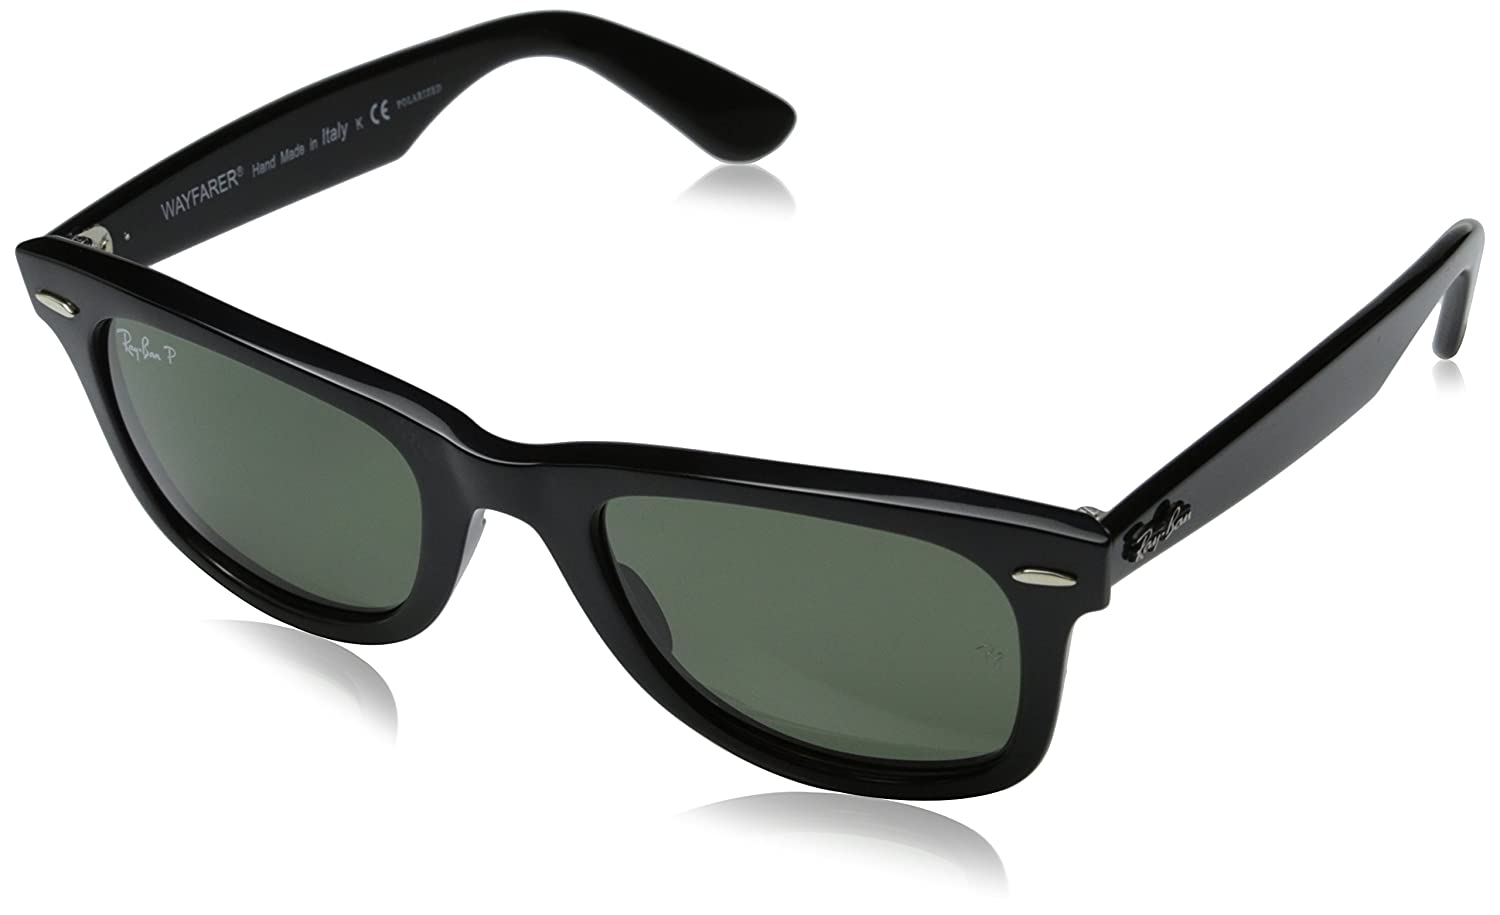 451bad589e Amazon.com  Ray-Ban Wayfarer - Black Frame Crystal Green Polarized Lenses